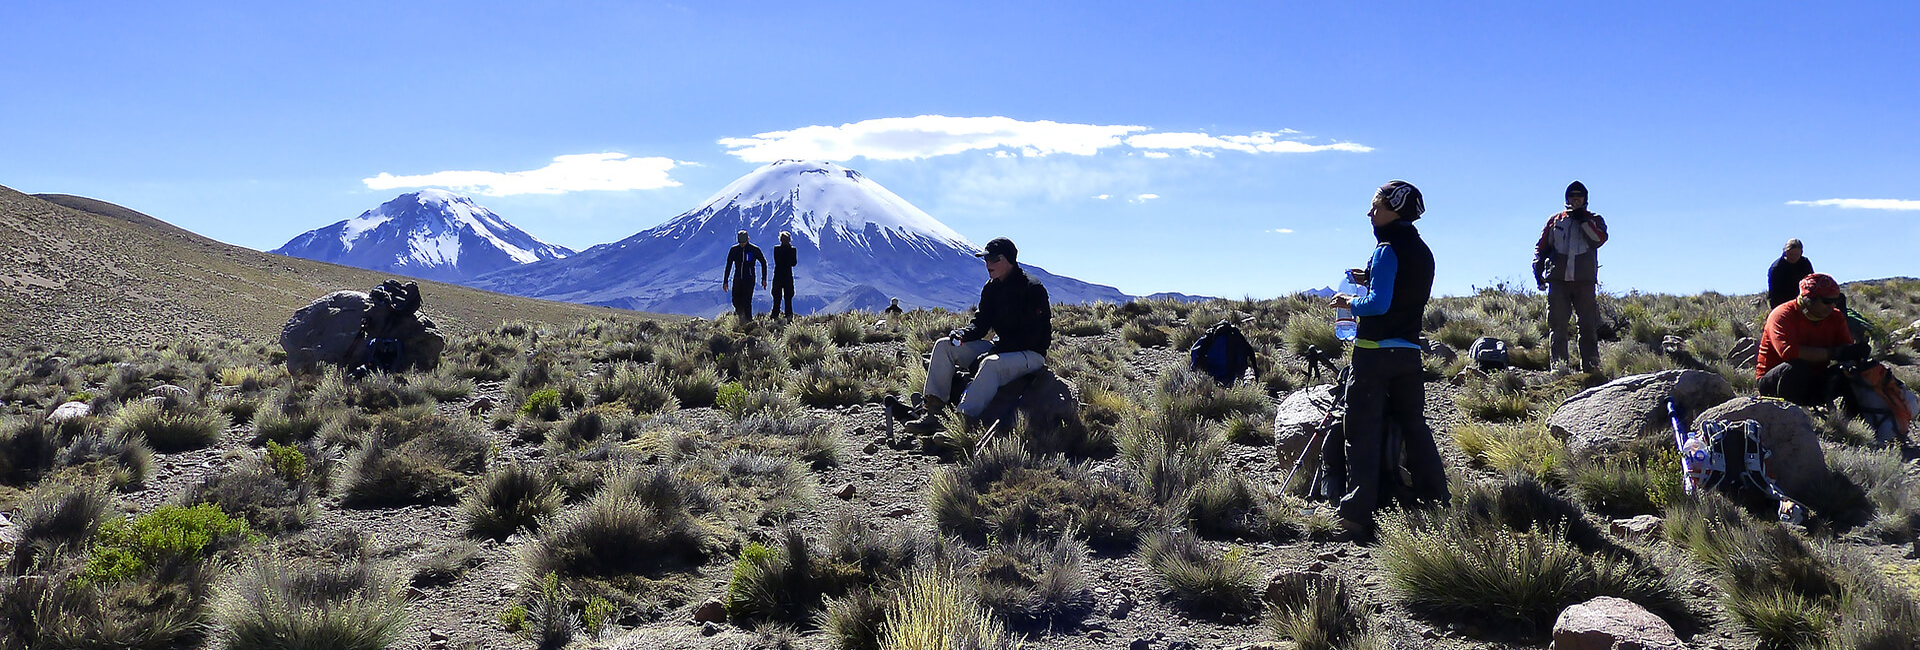 Trekking Group in the Chilean Andes, Altiplano